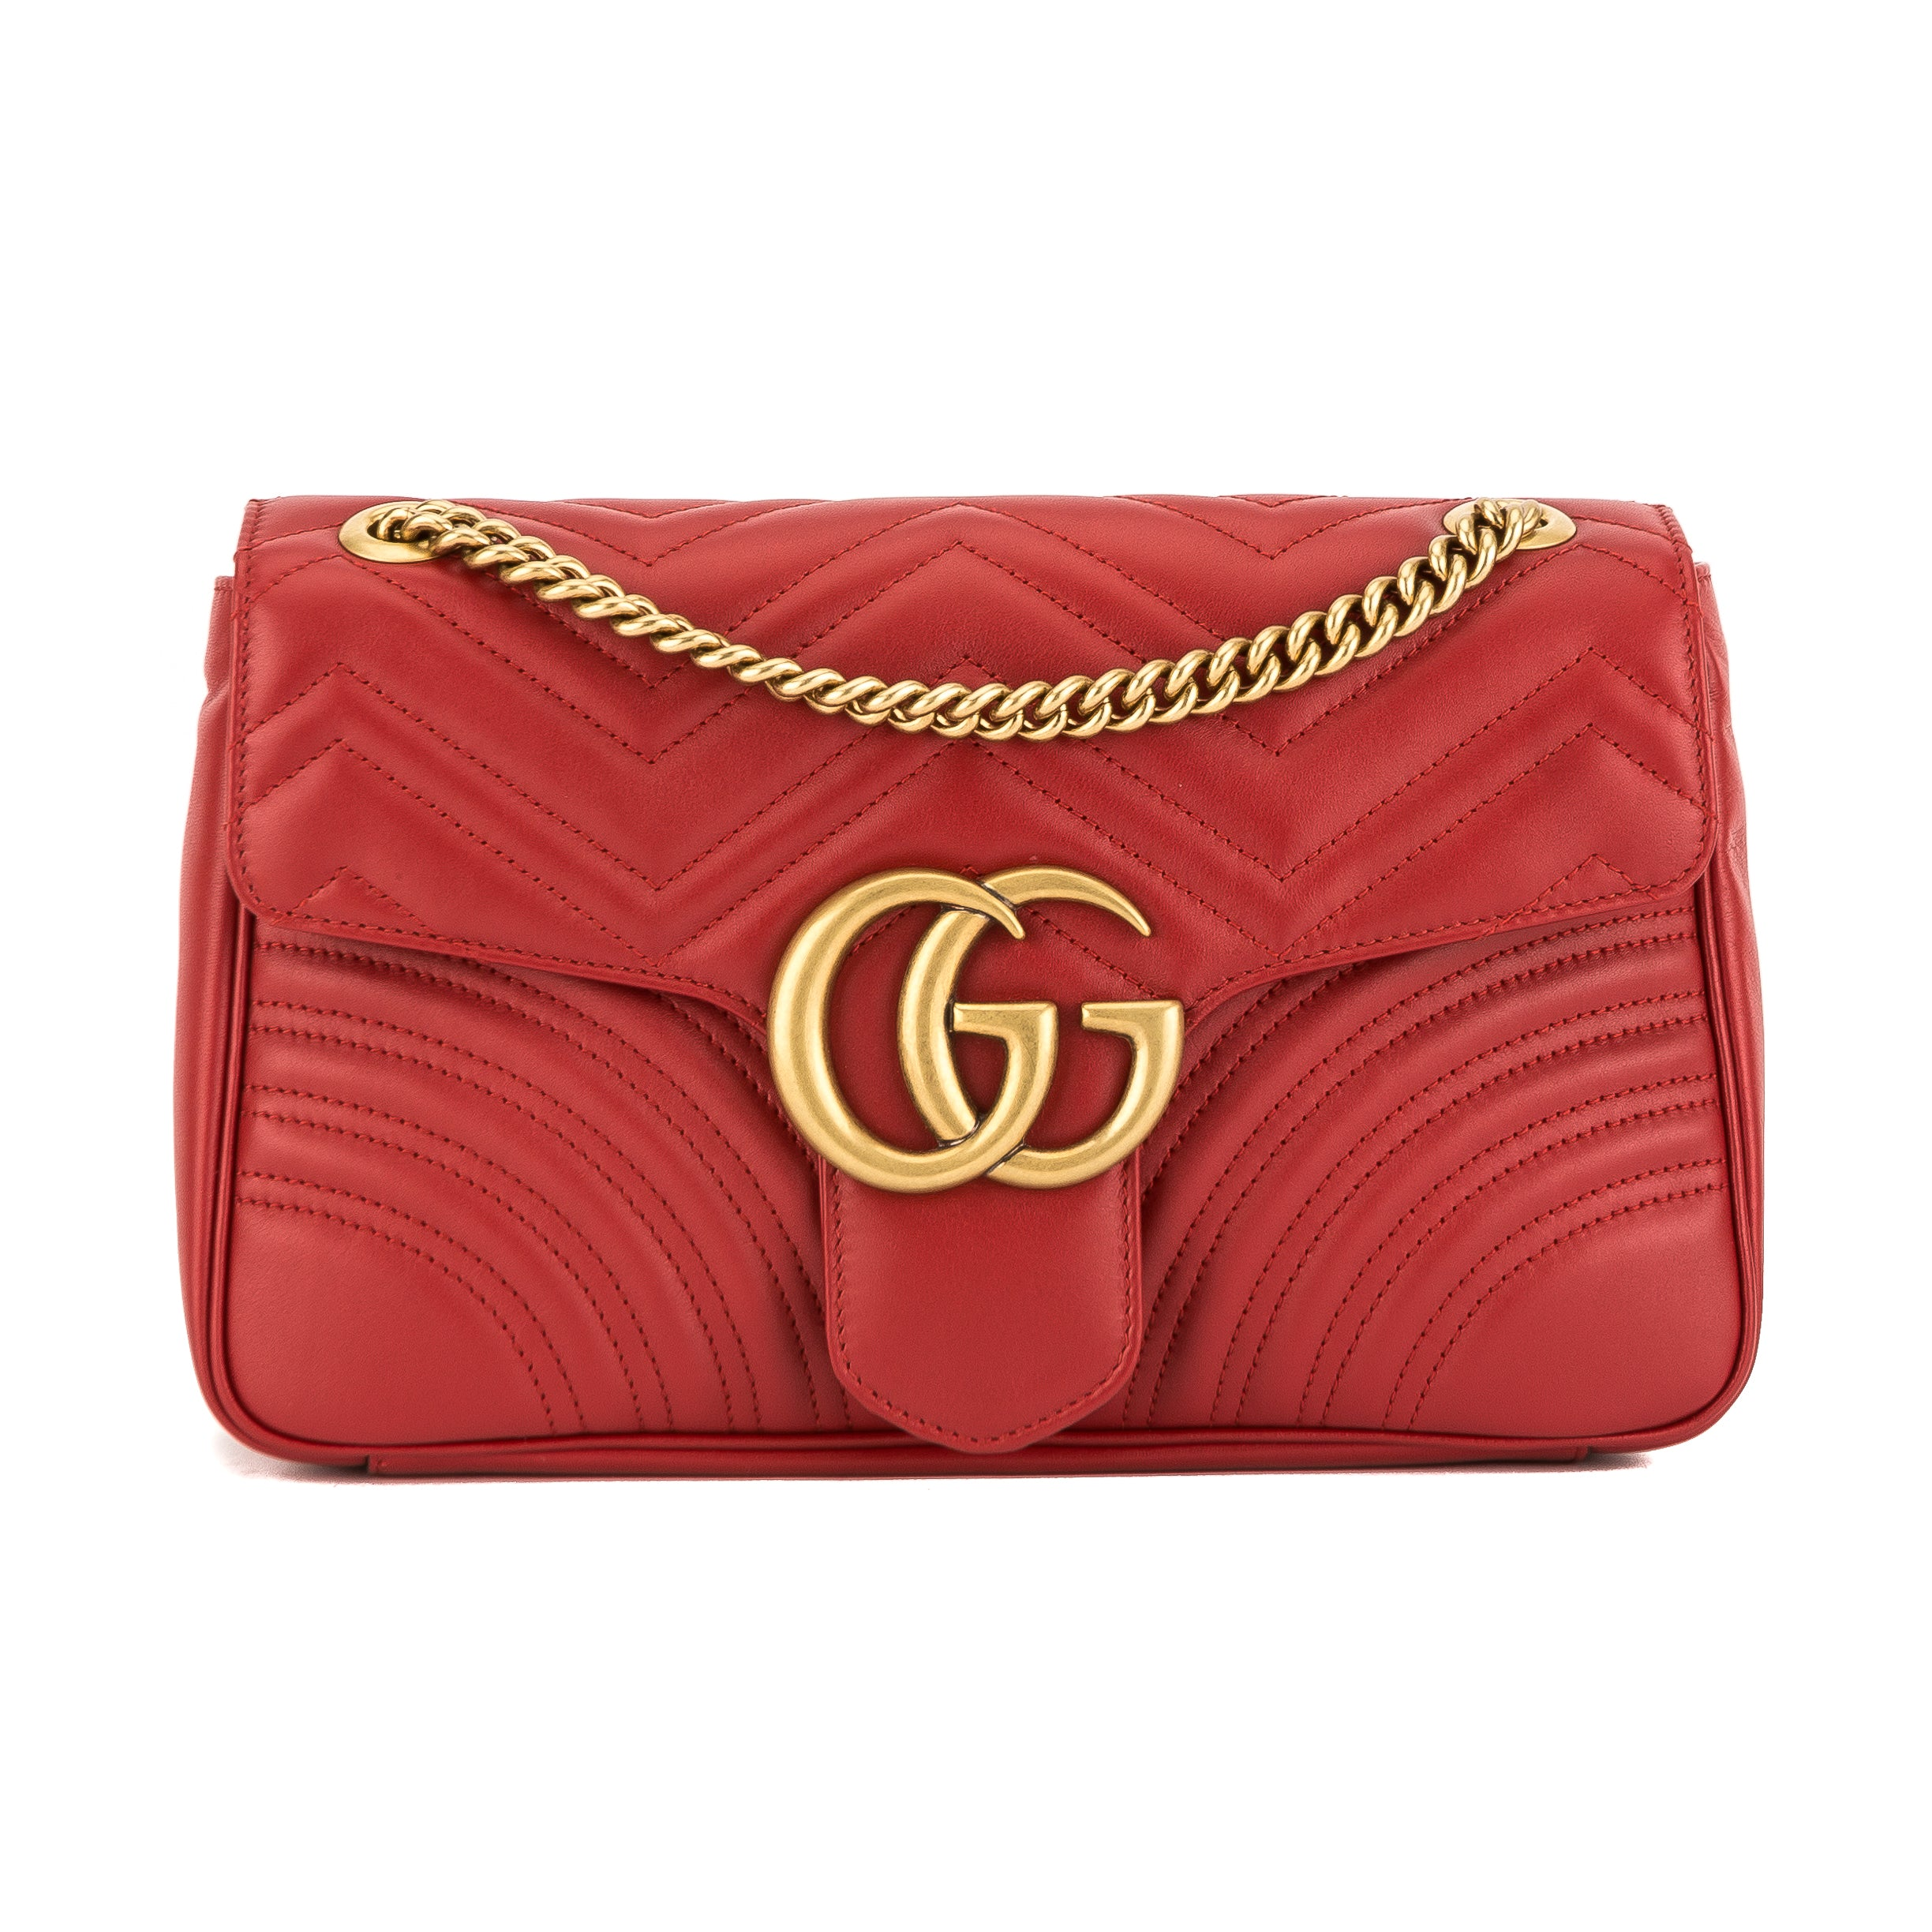 5d0c84b315f0 Gucci Hibiscus Red Leather GG Marmont Medium Matelasse Shoulder Bag New  with Tags